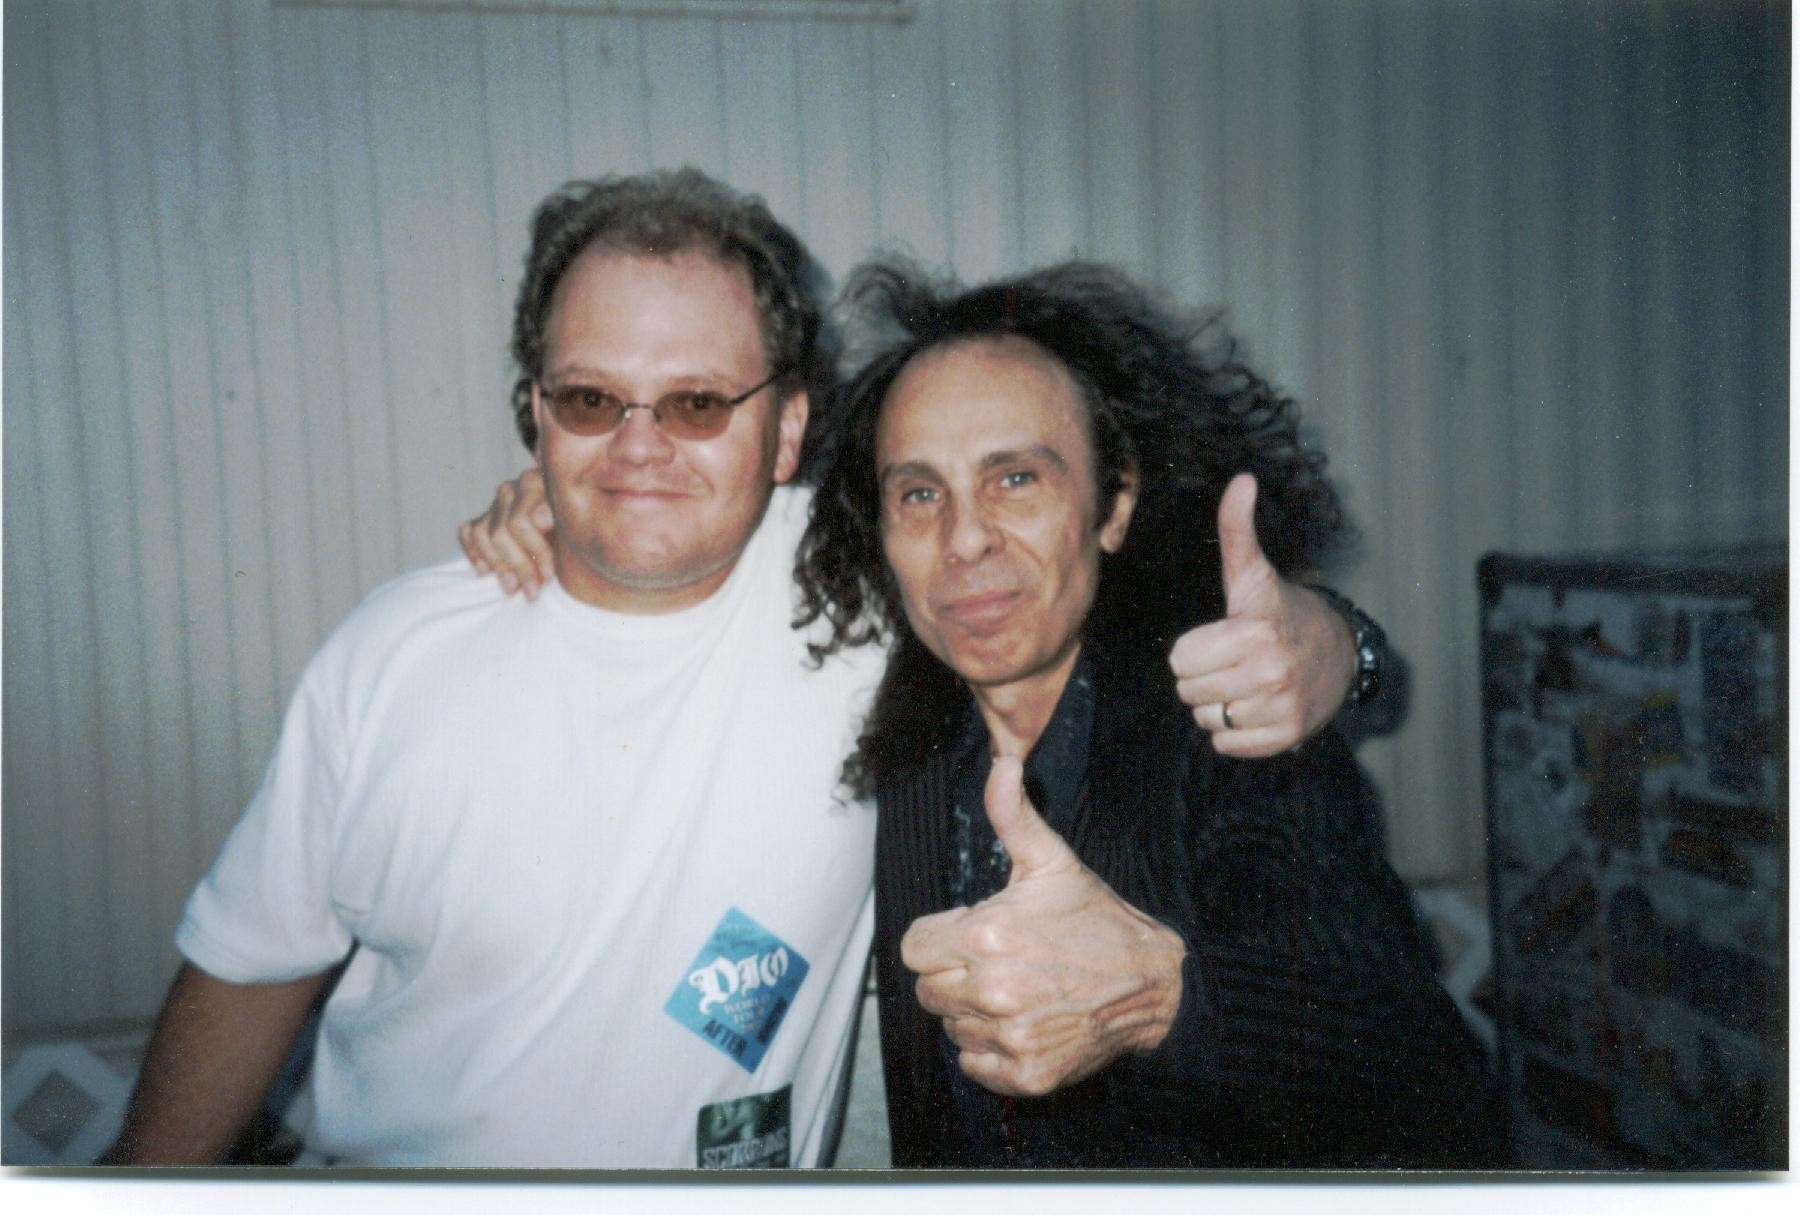 stop smoking ronnie james dio  with hypnotist chris cady in reno